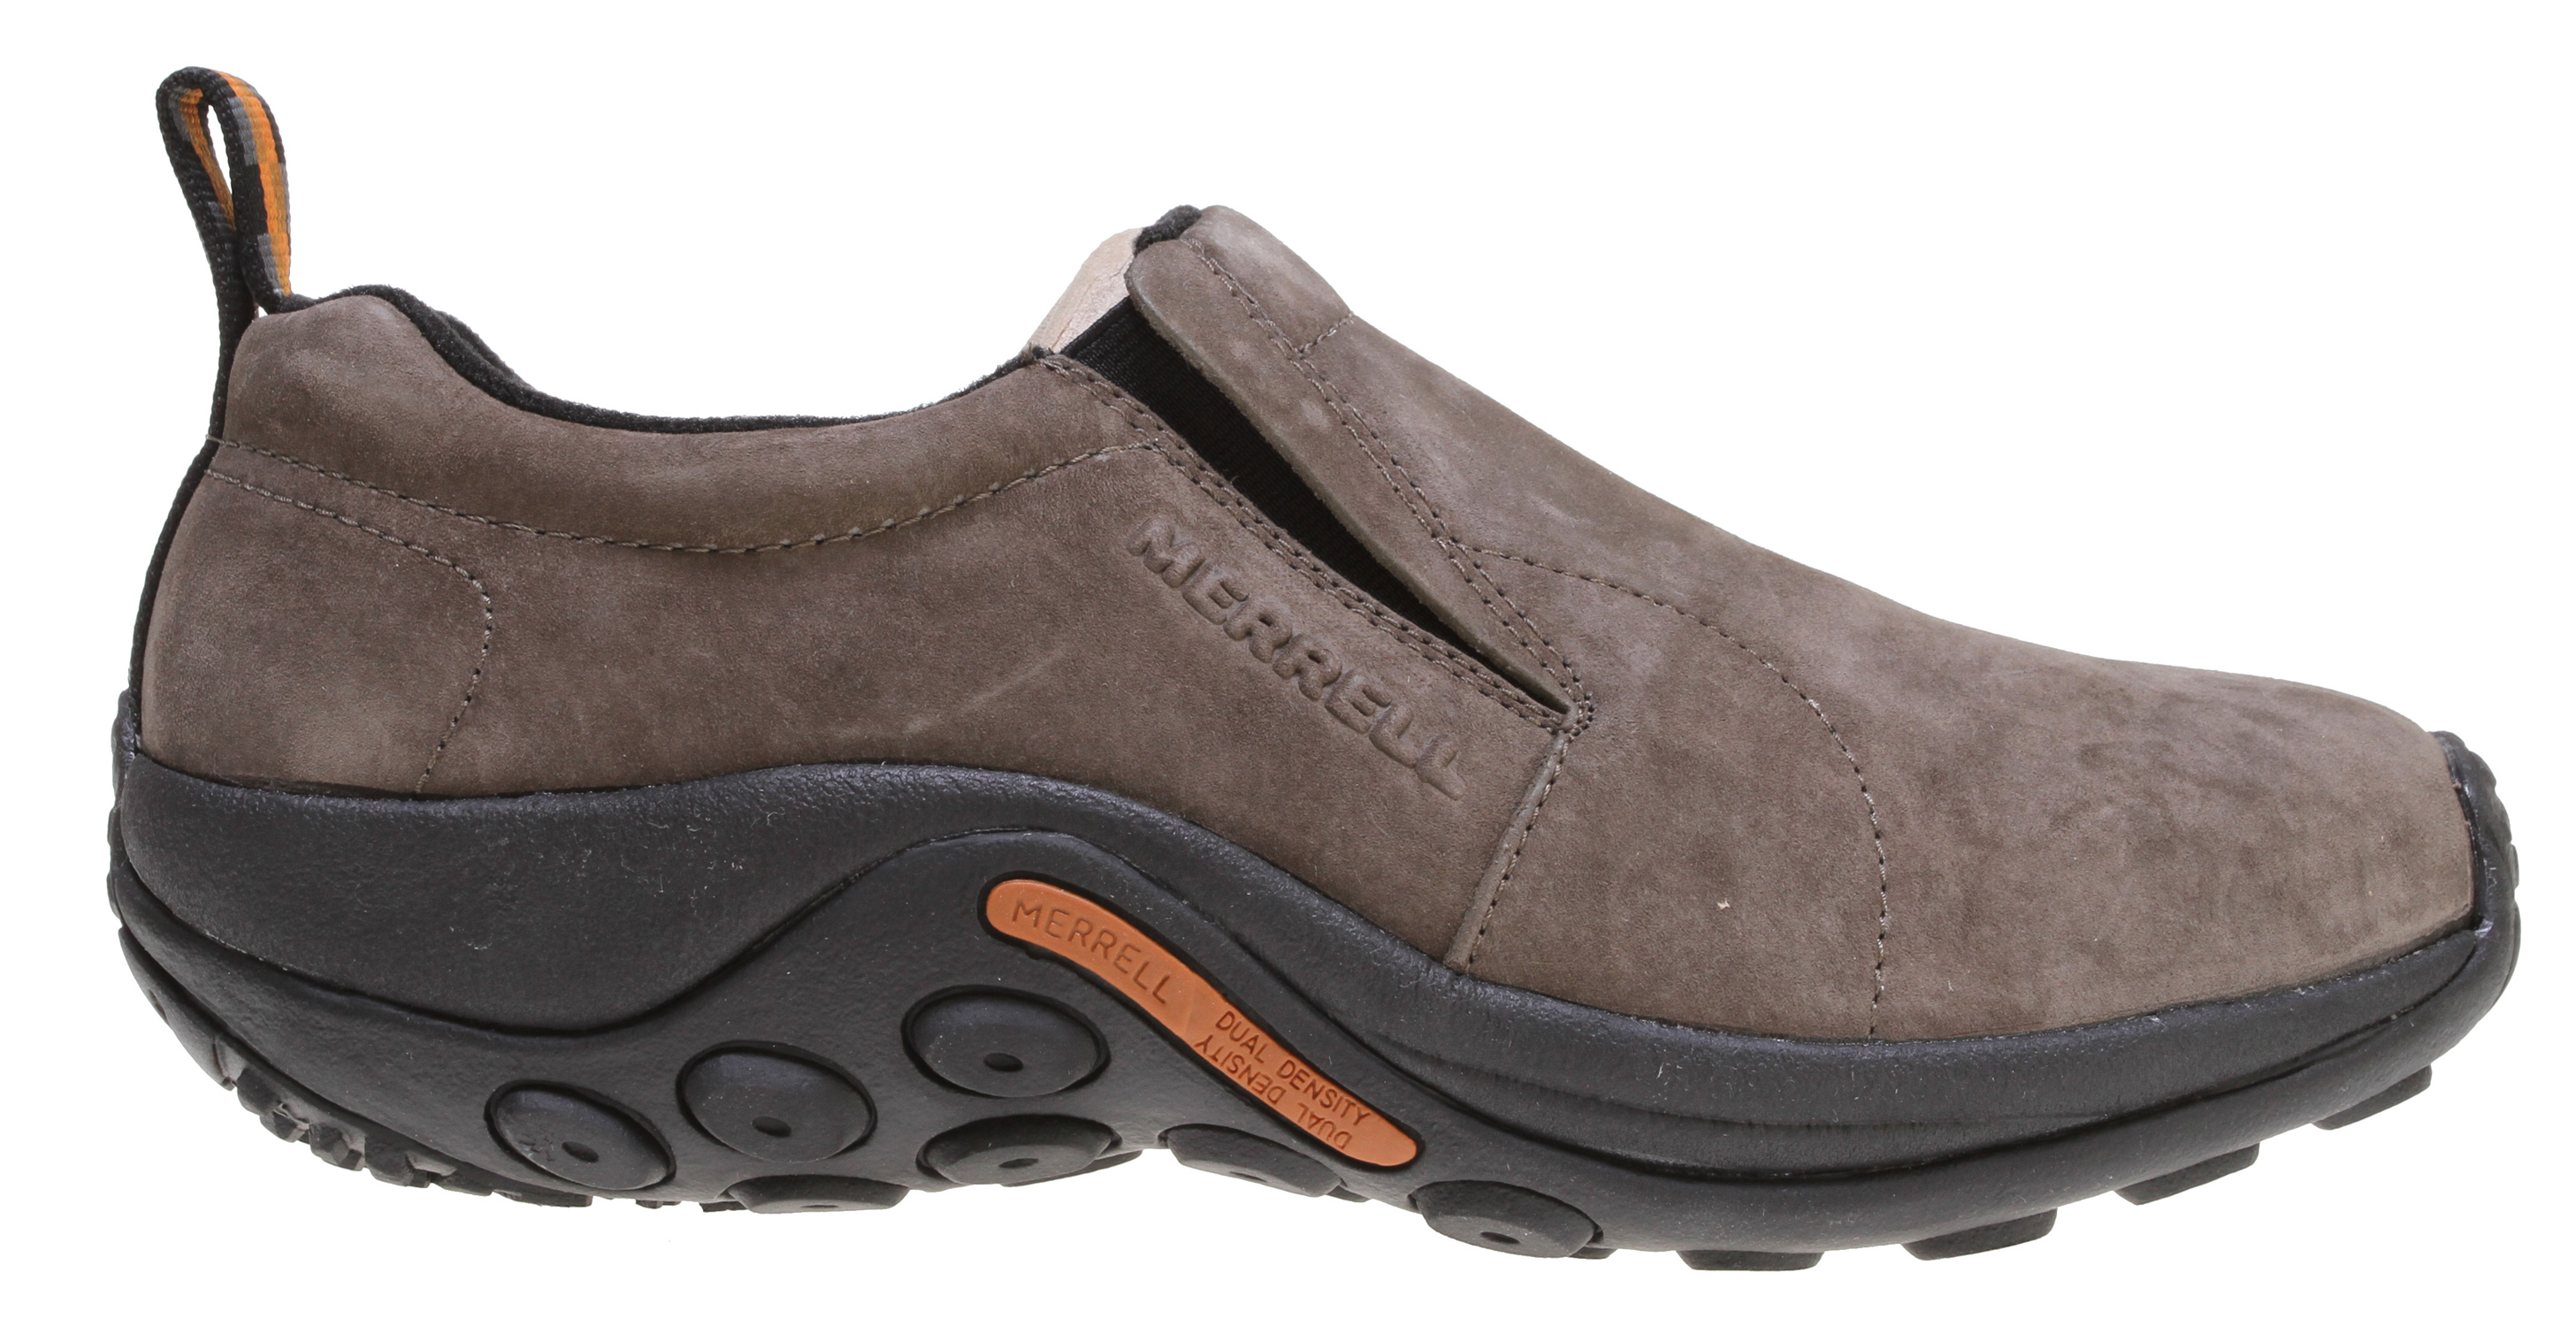 Look casual and be comfortable in these Merrell Jungle Moc Shoes. Featuring a simple, laceless design, these shoes are so easy to put on and take off, providing ease and convenience. Made with pig suede upper, these Merrell Jungle Moc Suede Shoes look ultra classy. Constructed to provide ultimate flexibility and comfort, it's ideal to wear all day long. Molded arch shank and footbed provide added comfort and support to your feet. All these great features bundled into one, you have to dive in and get it.Key Features of The Merrell Jungle Moc Shoes: Strobel construction offers flexibility and comfort Pig suede leather upper Lining treated with Aegis antimicrobial solution Ortholite Anatomical Footbed Molded nylon arch shank Compression Molded EVA Footframe provides cushioning Merrell air cushion in the heel absorbs shock and adds stability Merrell Jungle runner Sole/Sticky rubber Weight: 1 lb. 9 ozs. - $55.95